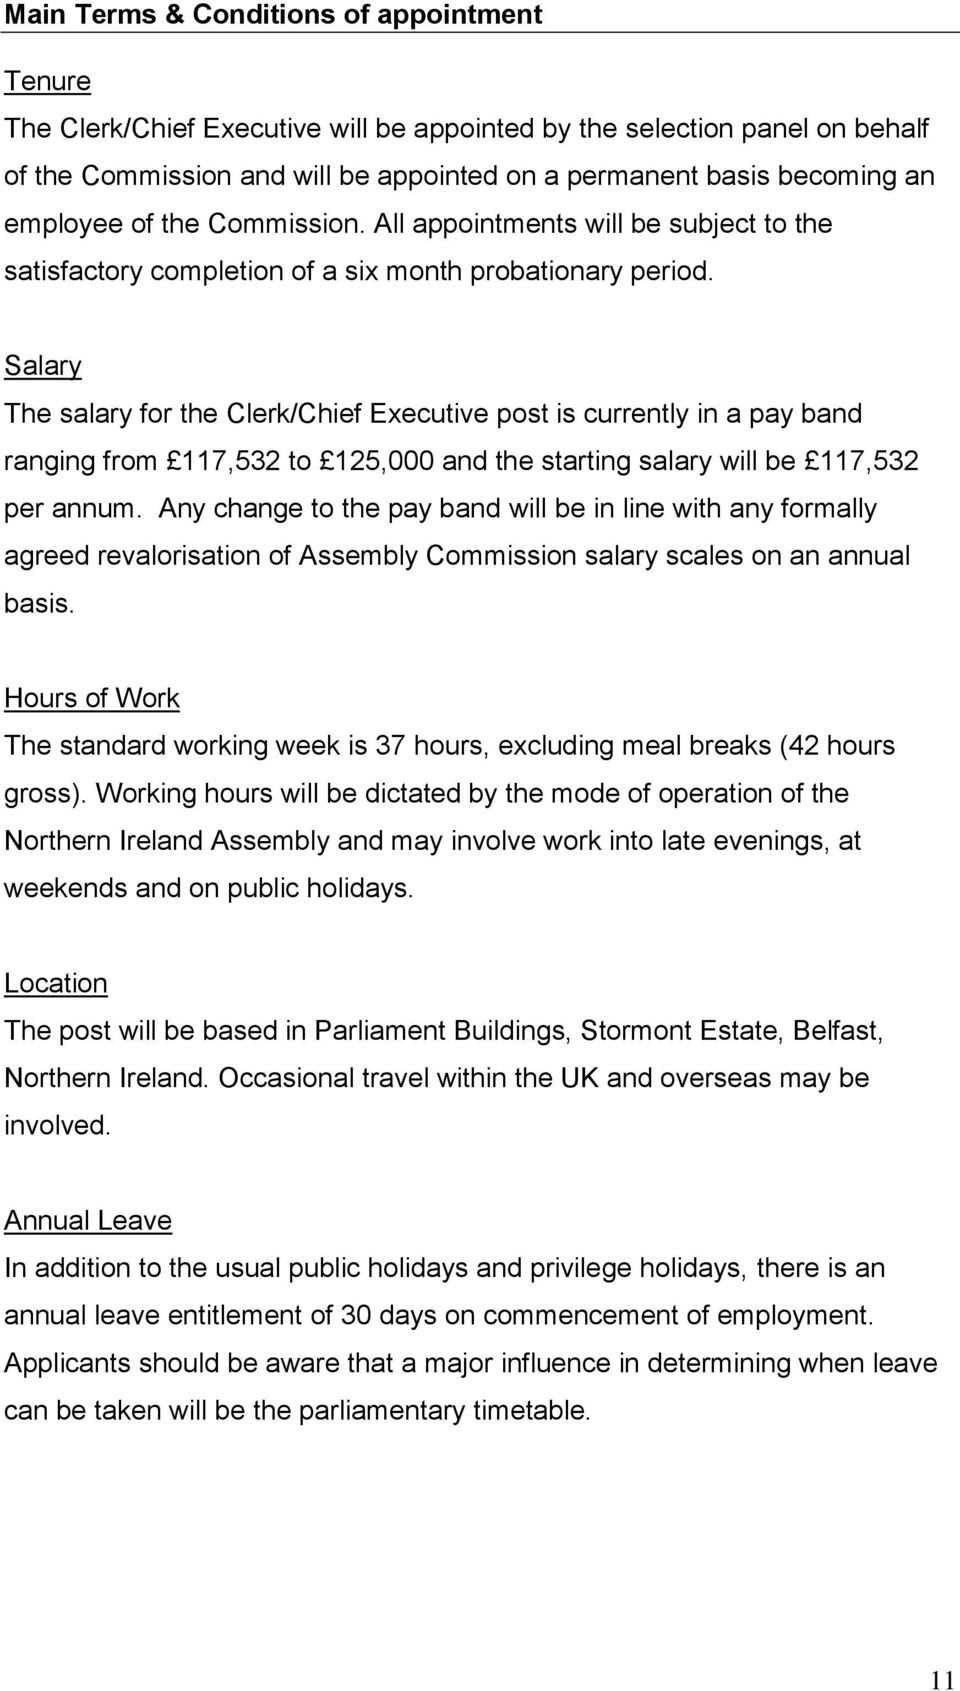 Salary The salary for the Clerk/Chief Executive post is currently in a pay band ranging from 117,532 to 125,000 and the starting salary will be 117,532 per annum.